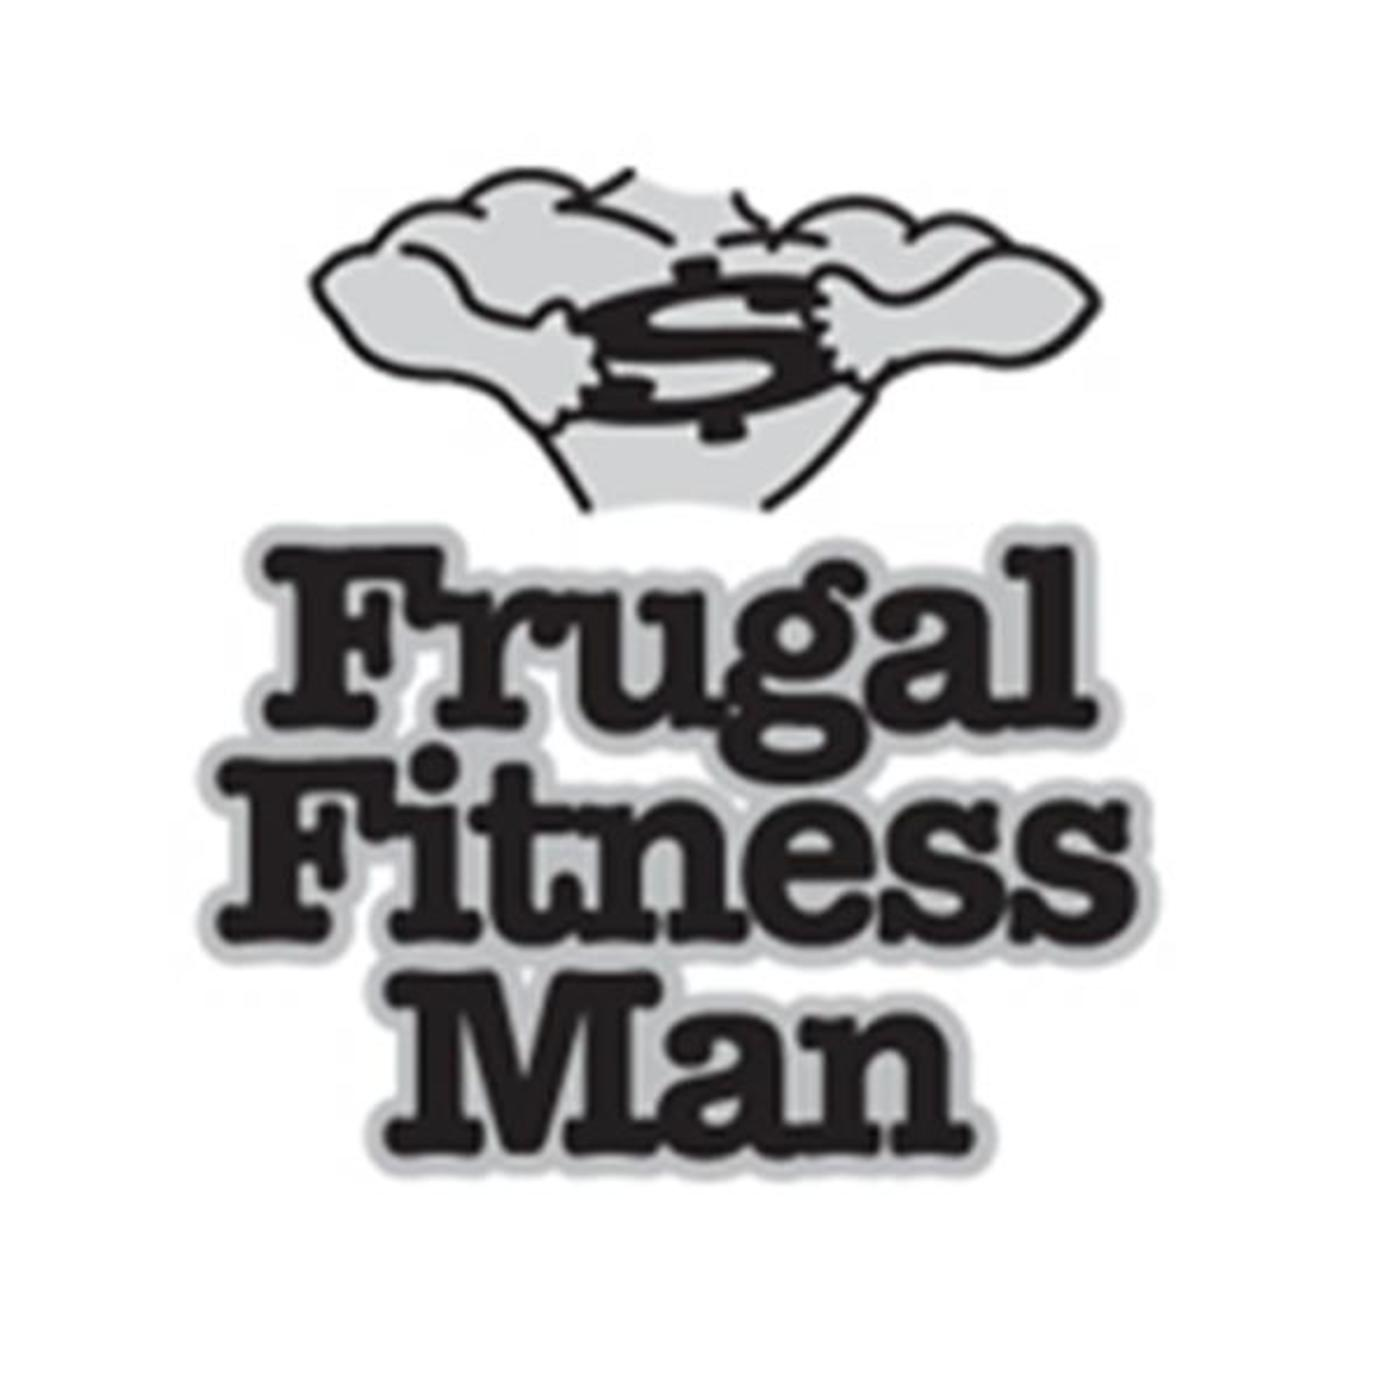 Frugal Fitness Man